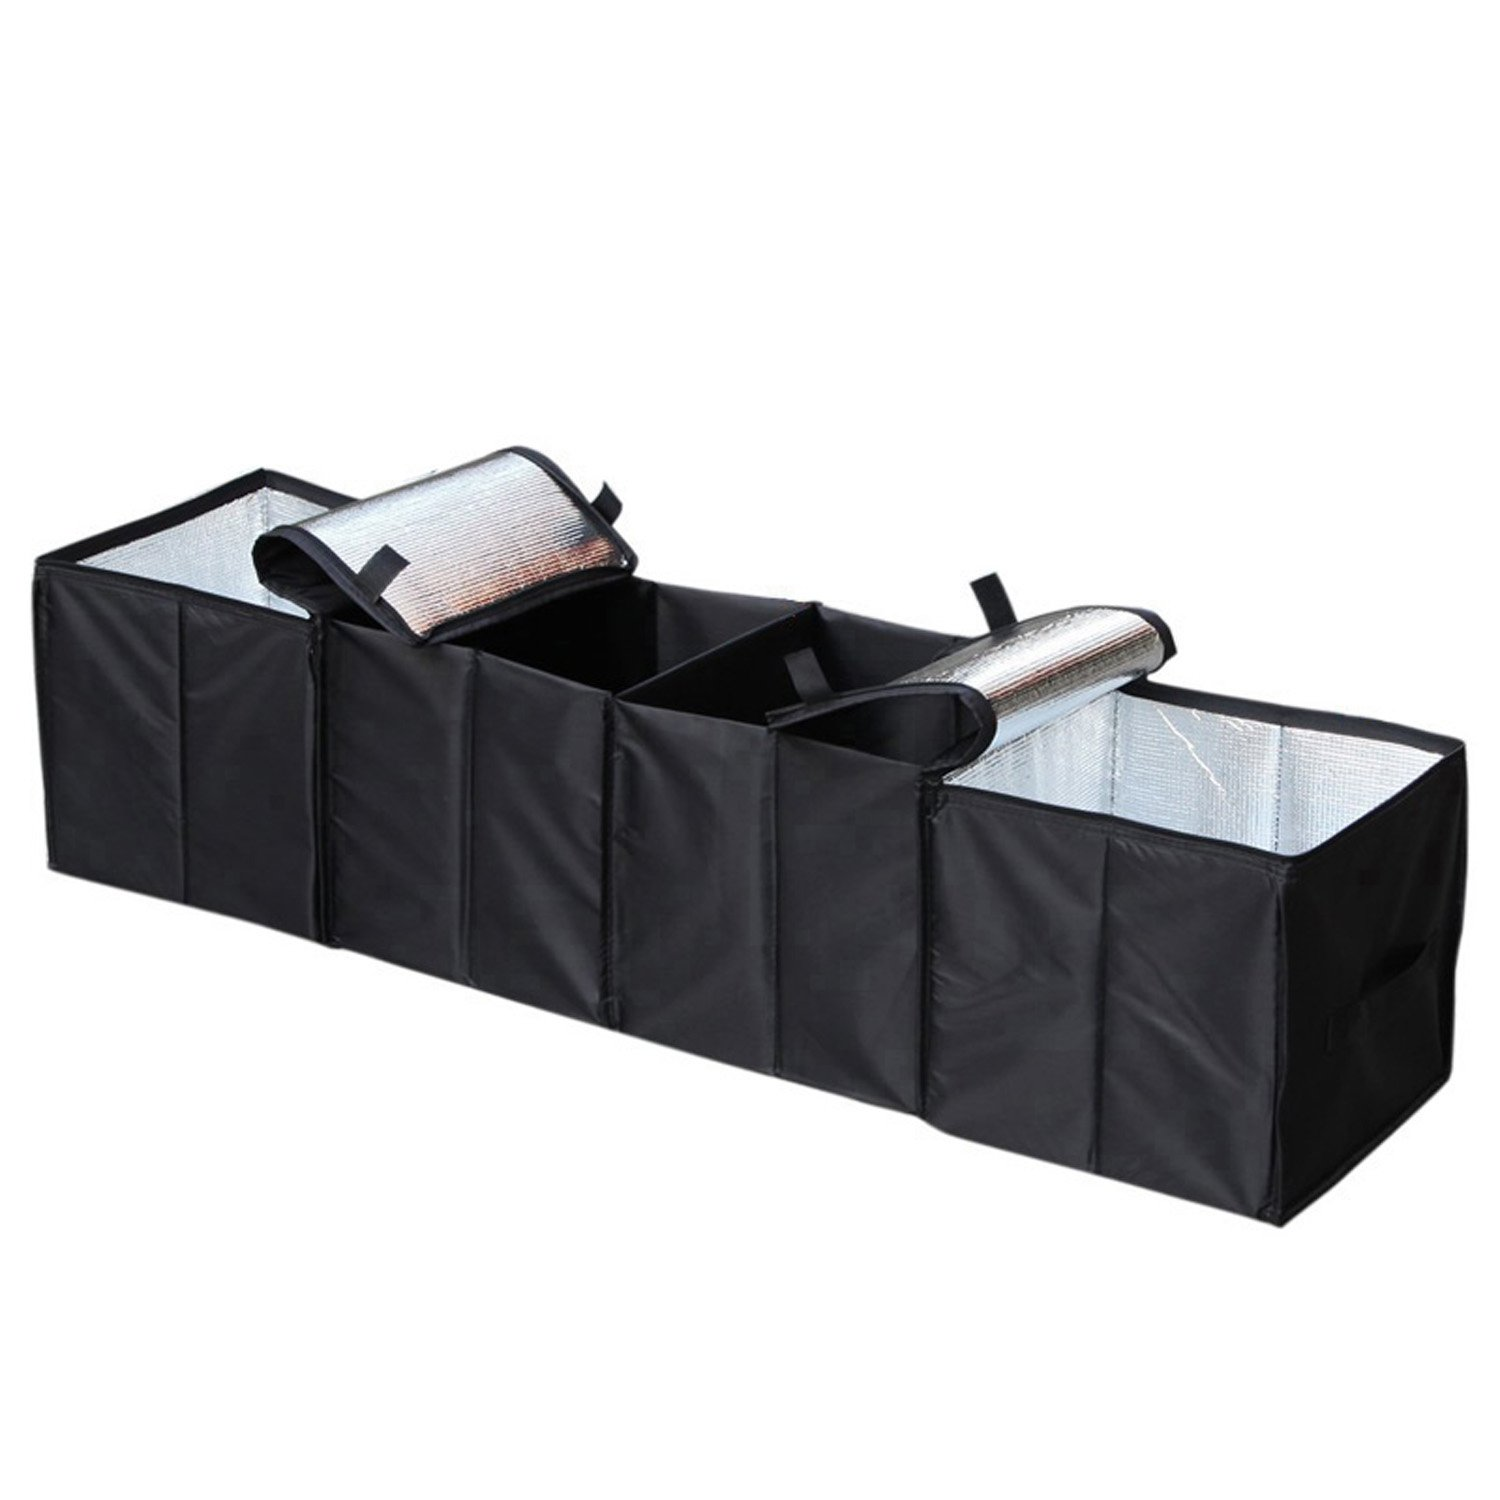 Amazon.com: Cargo Foldable Multi Compartment Fabric Car Truck Van SUV  Storage Basket Trunk Organizer And Cooler Set,Black,AK 018: Automotive